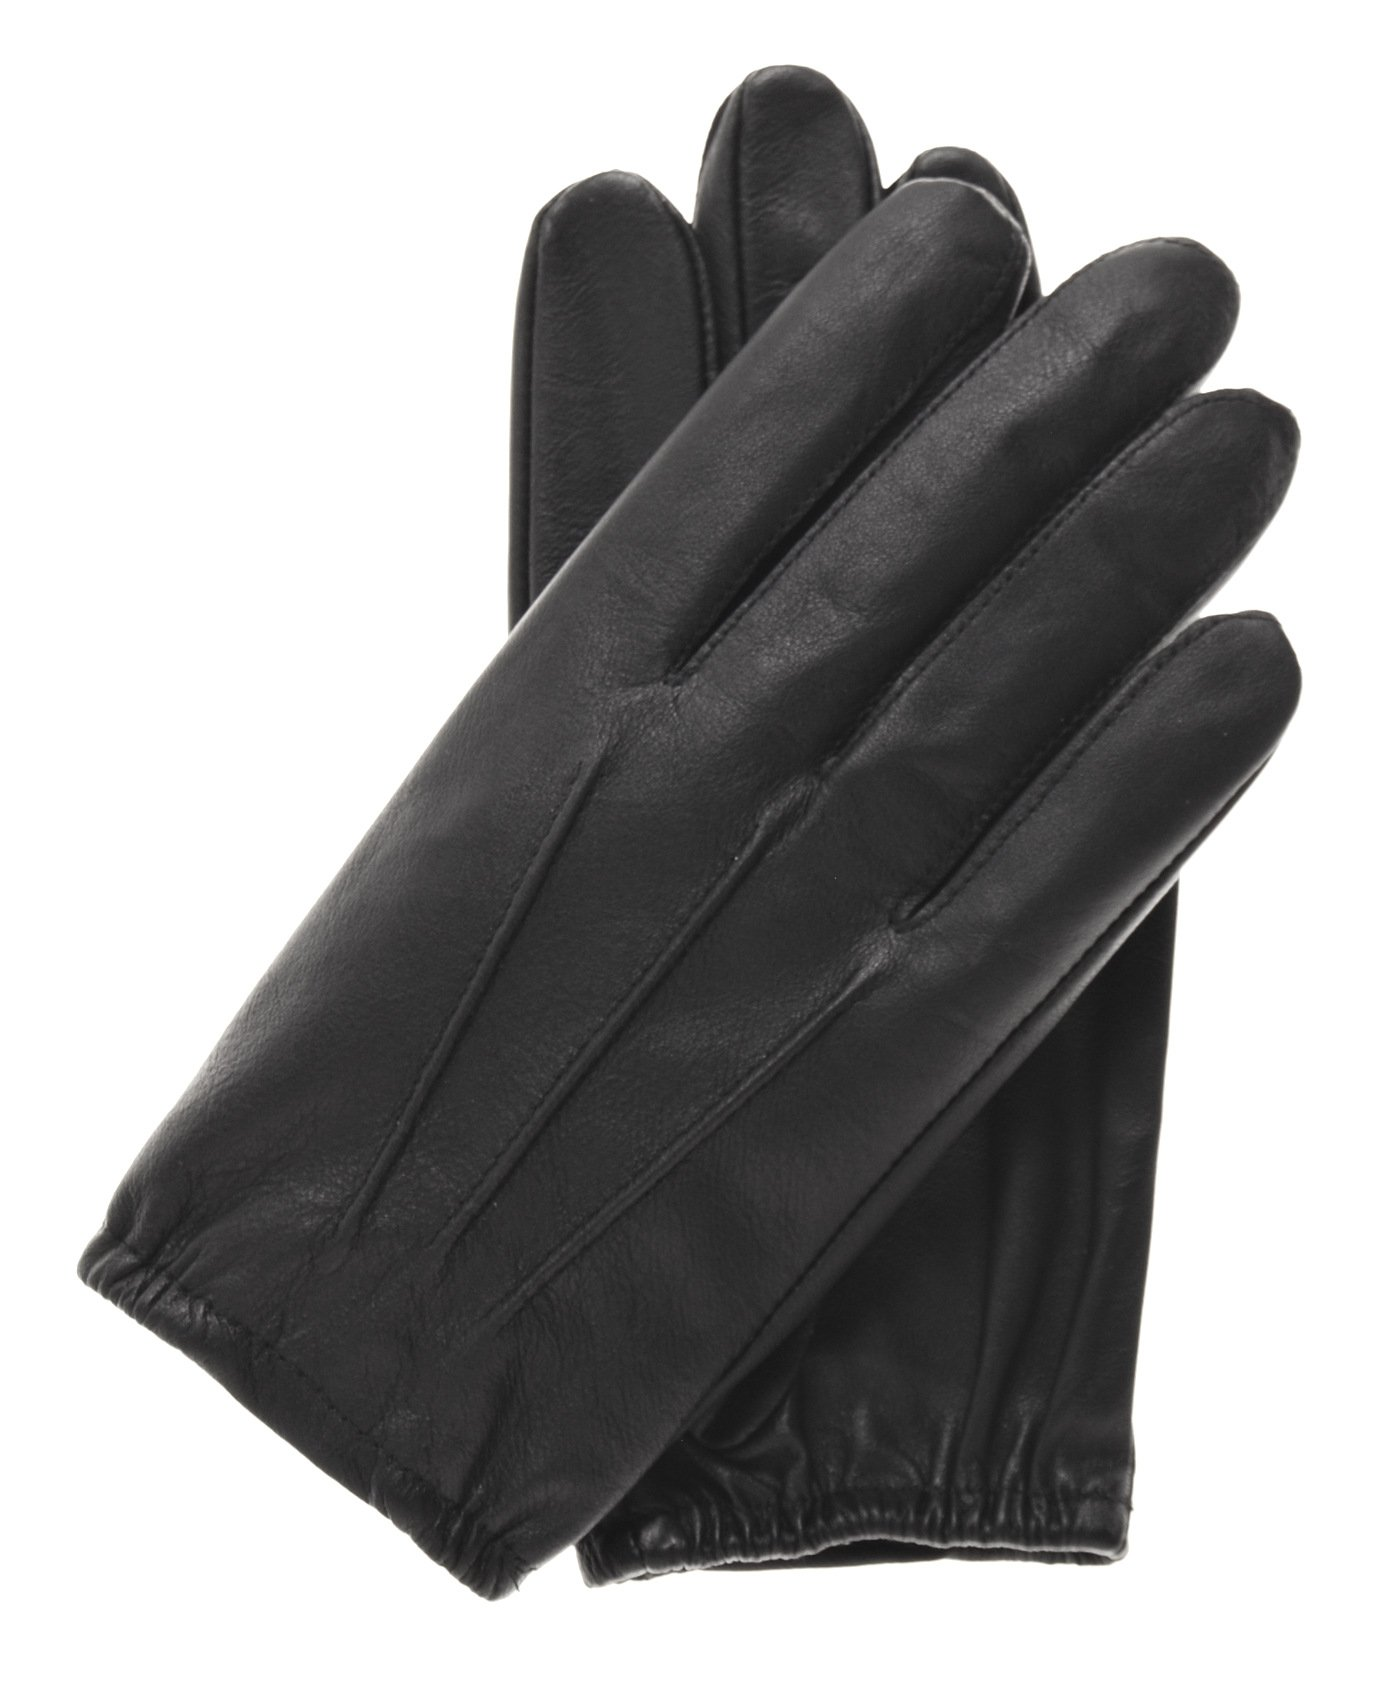 Pratt and Hart Men's Thin Unlined Police Search Duty Gloves Size XXXXL Color Black